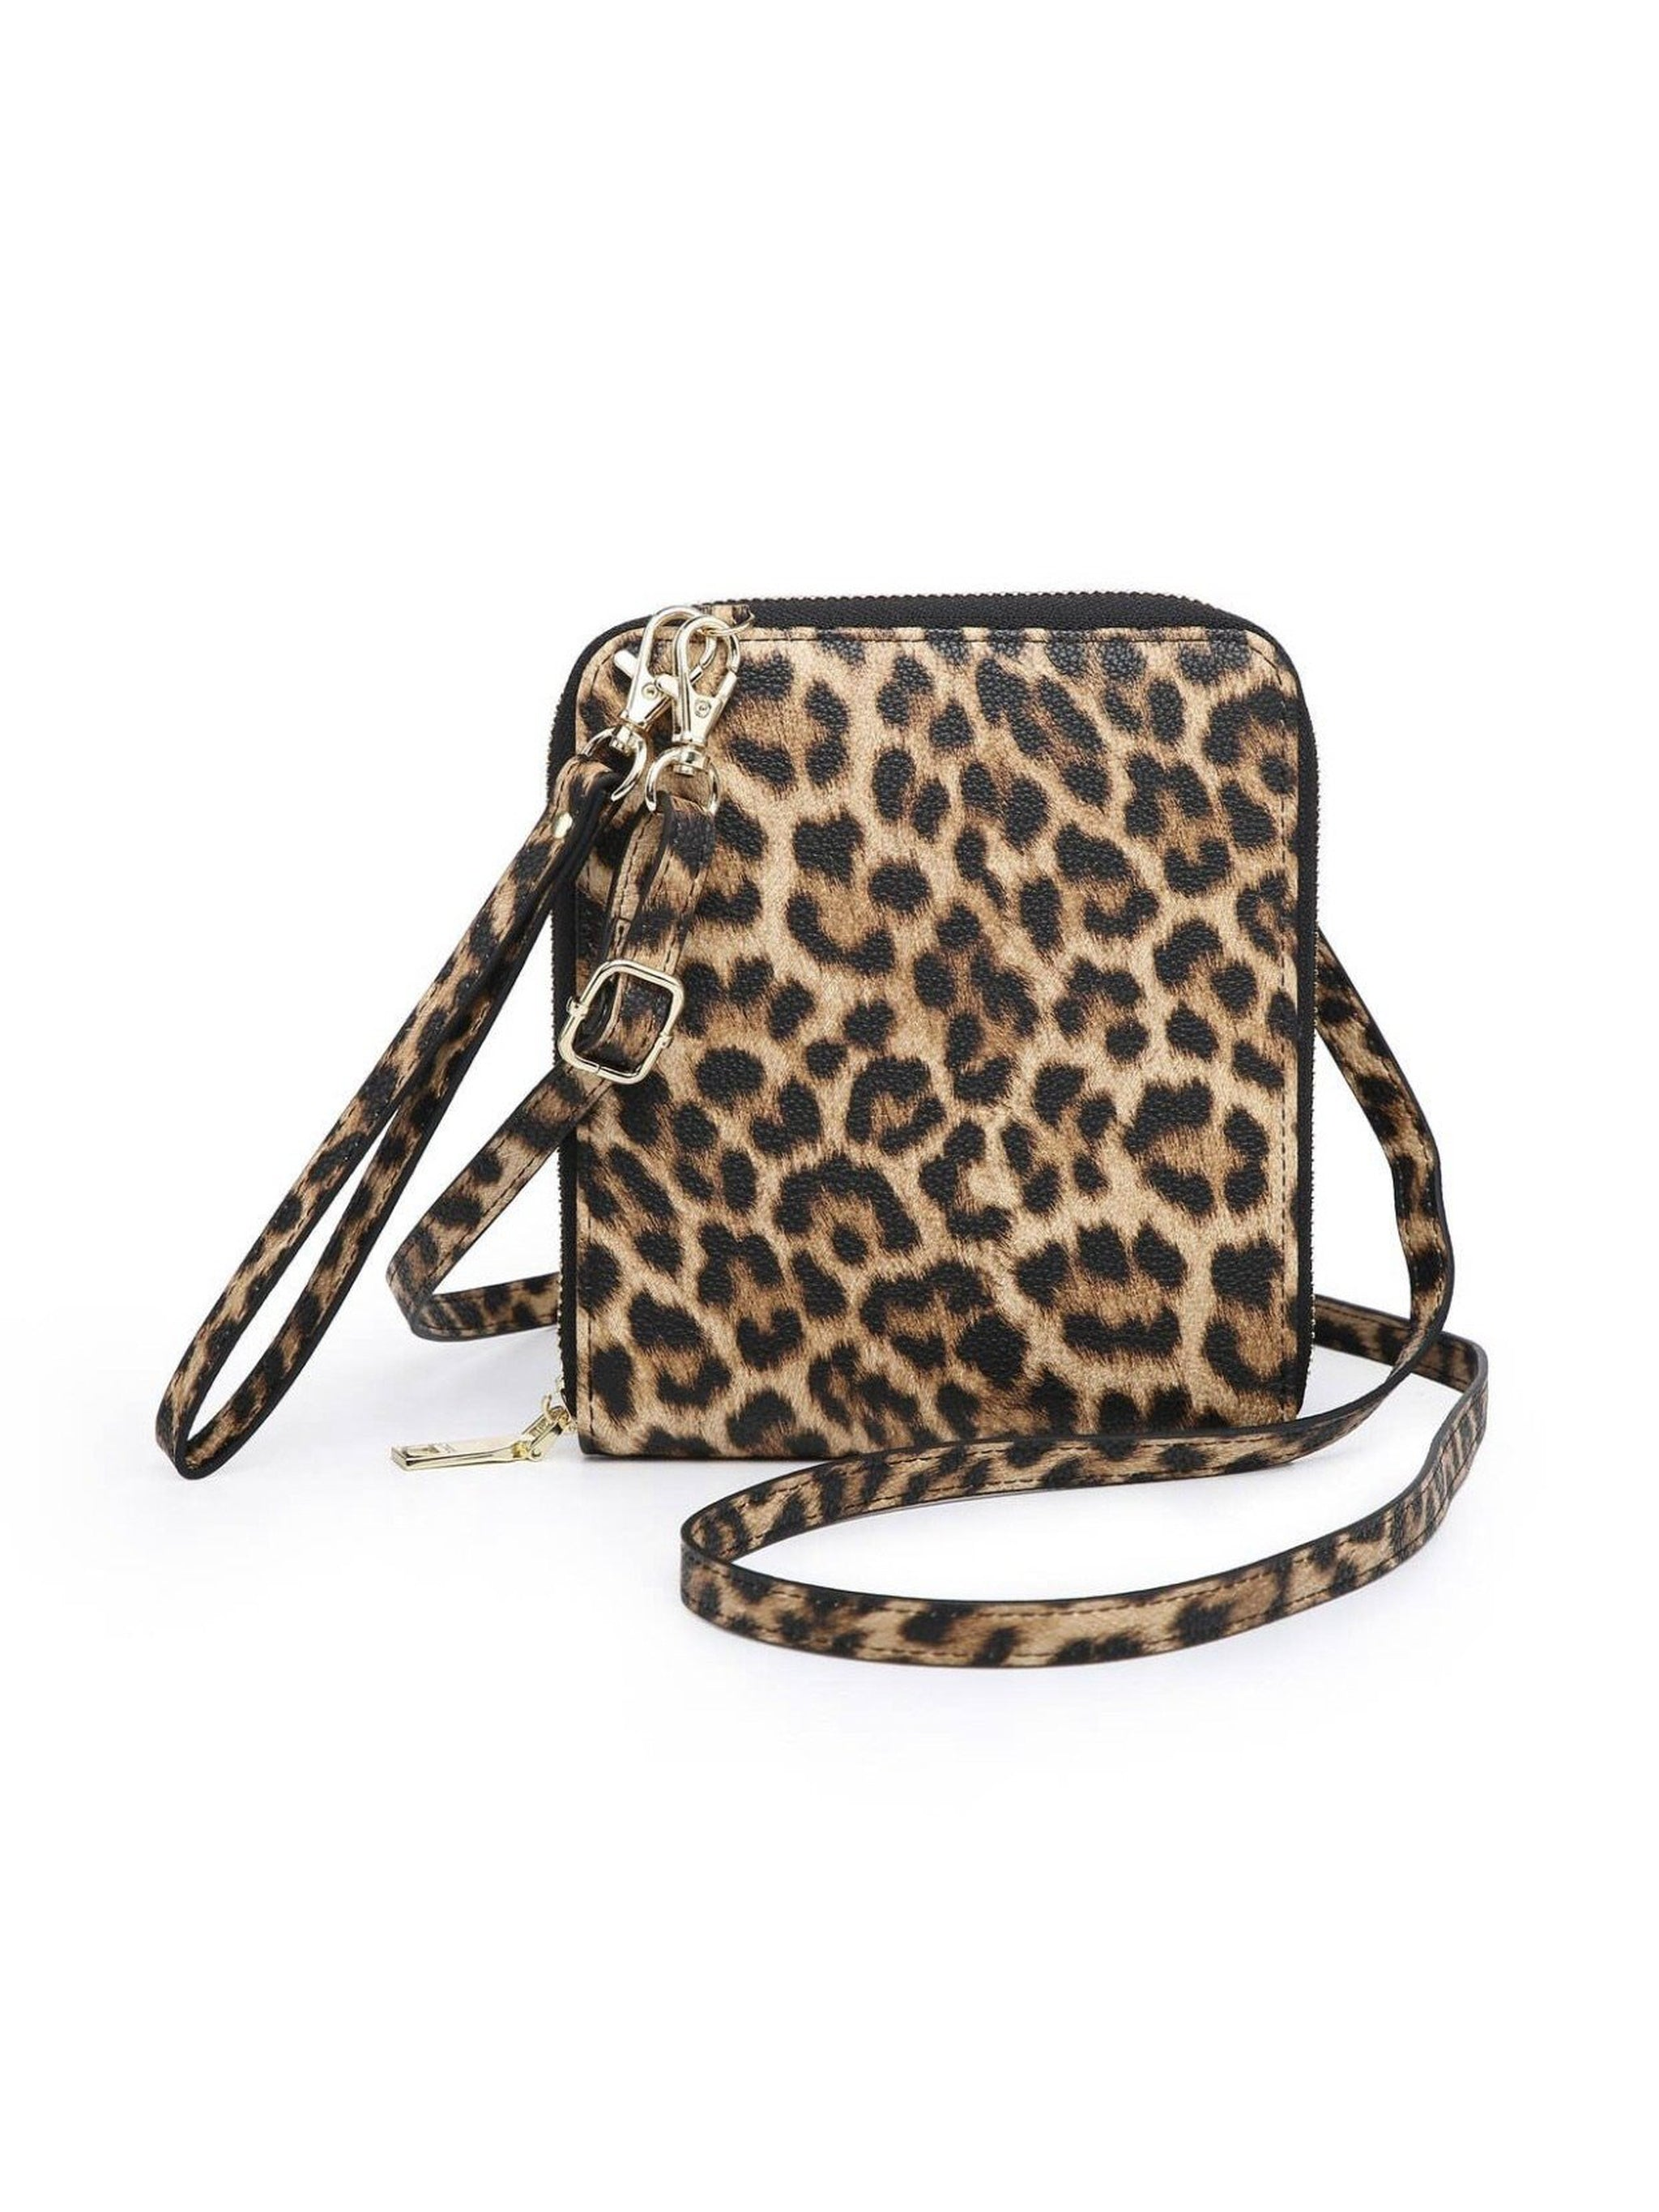 THE WALLET CROSSBODY PURSES - various